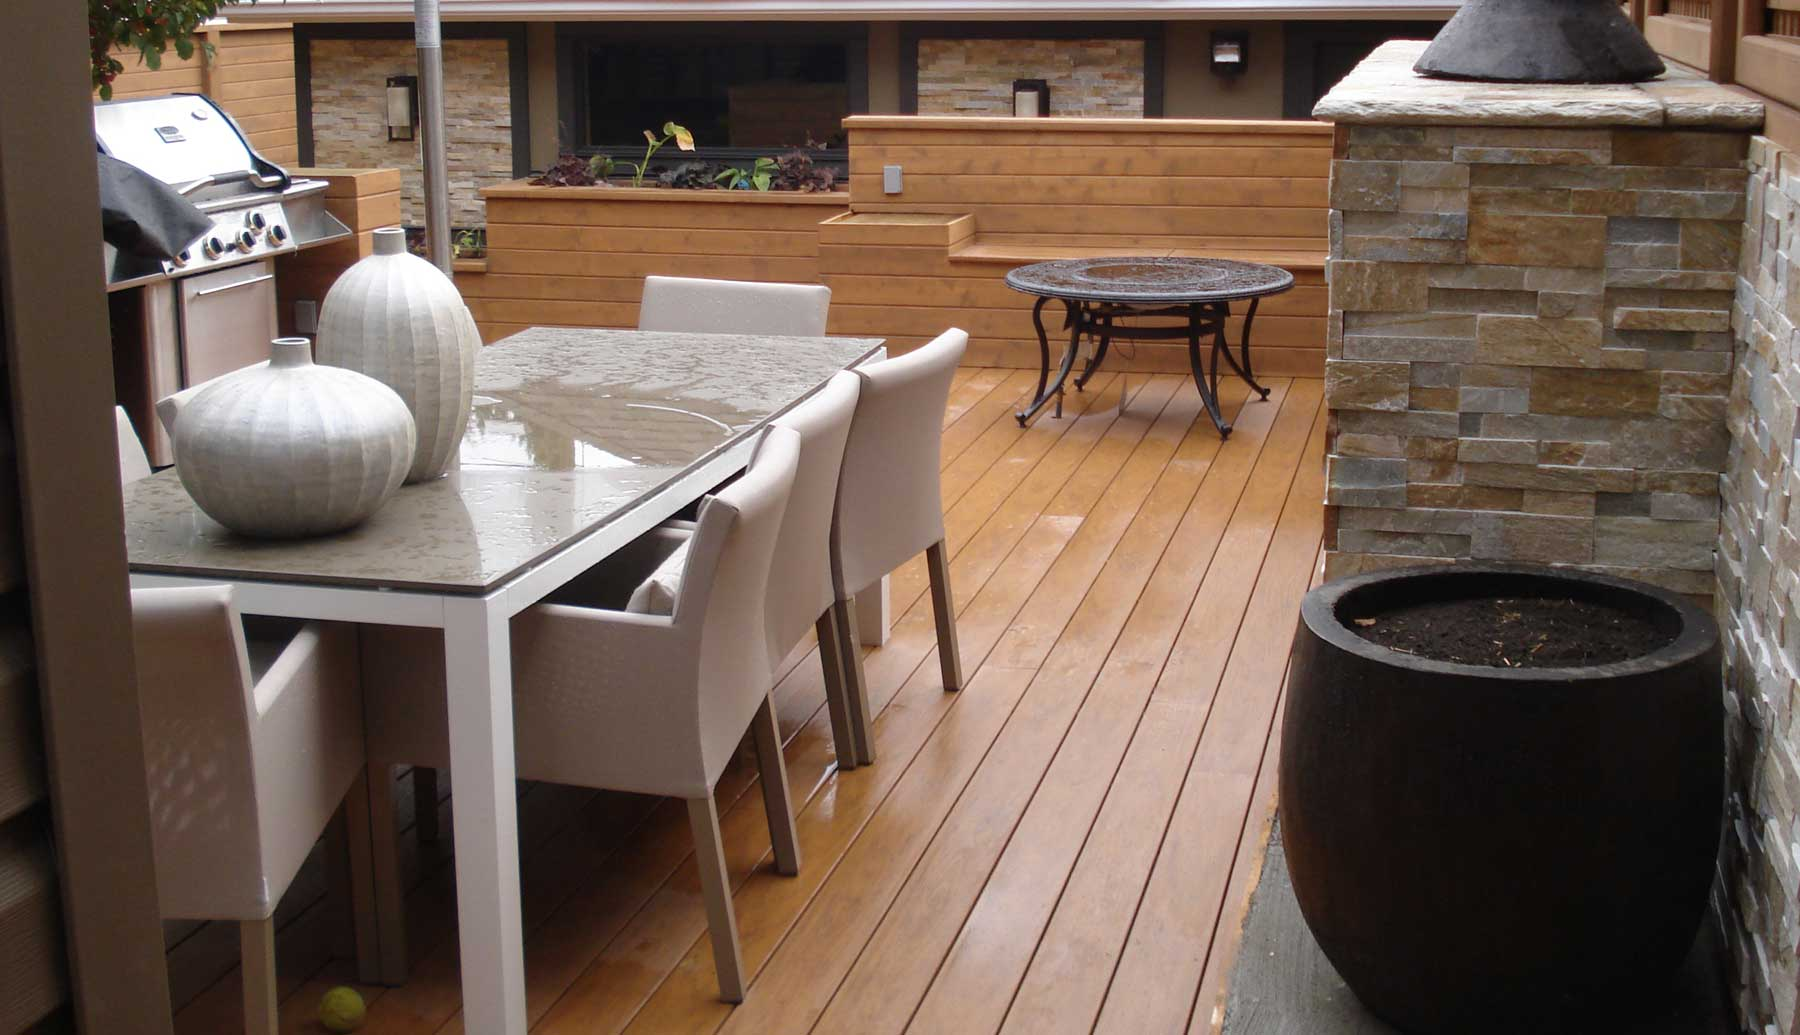 Wooden Sun Deck After Rain | Mountain View Sun Decks